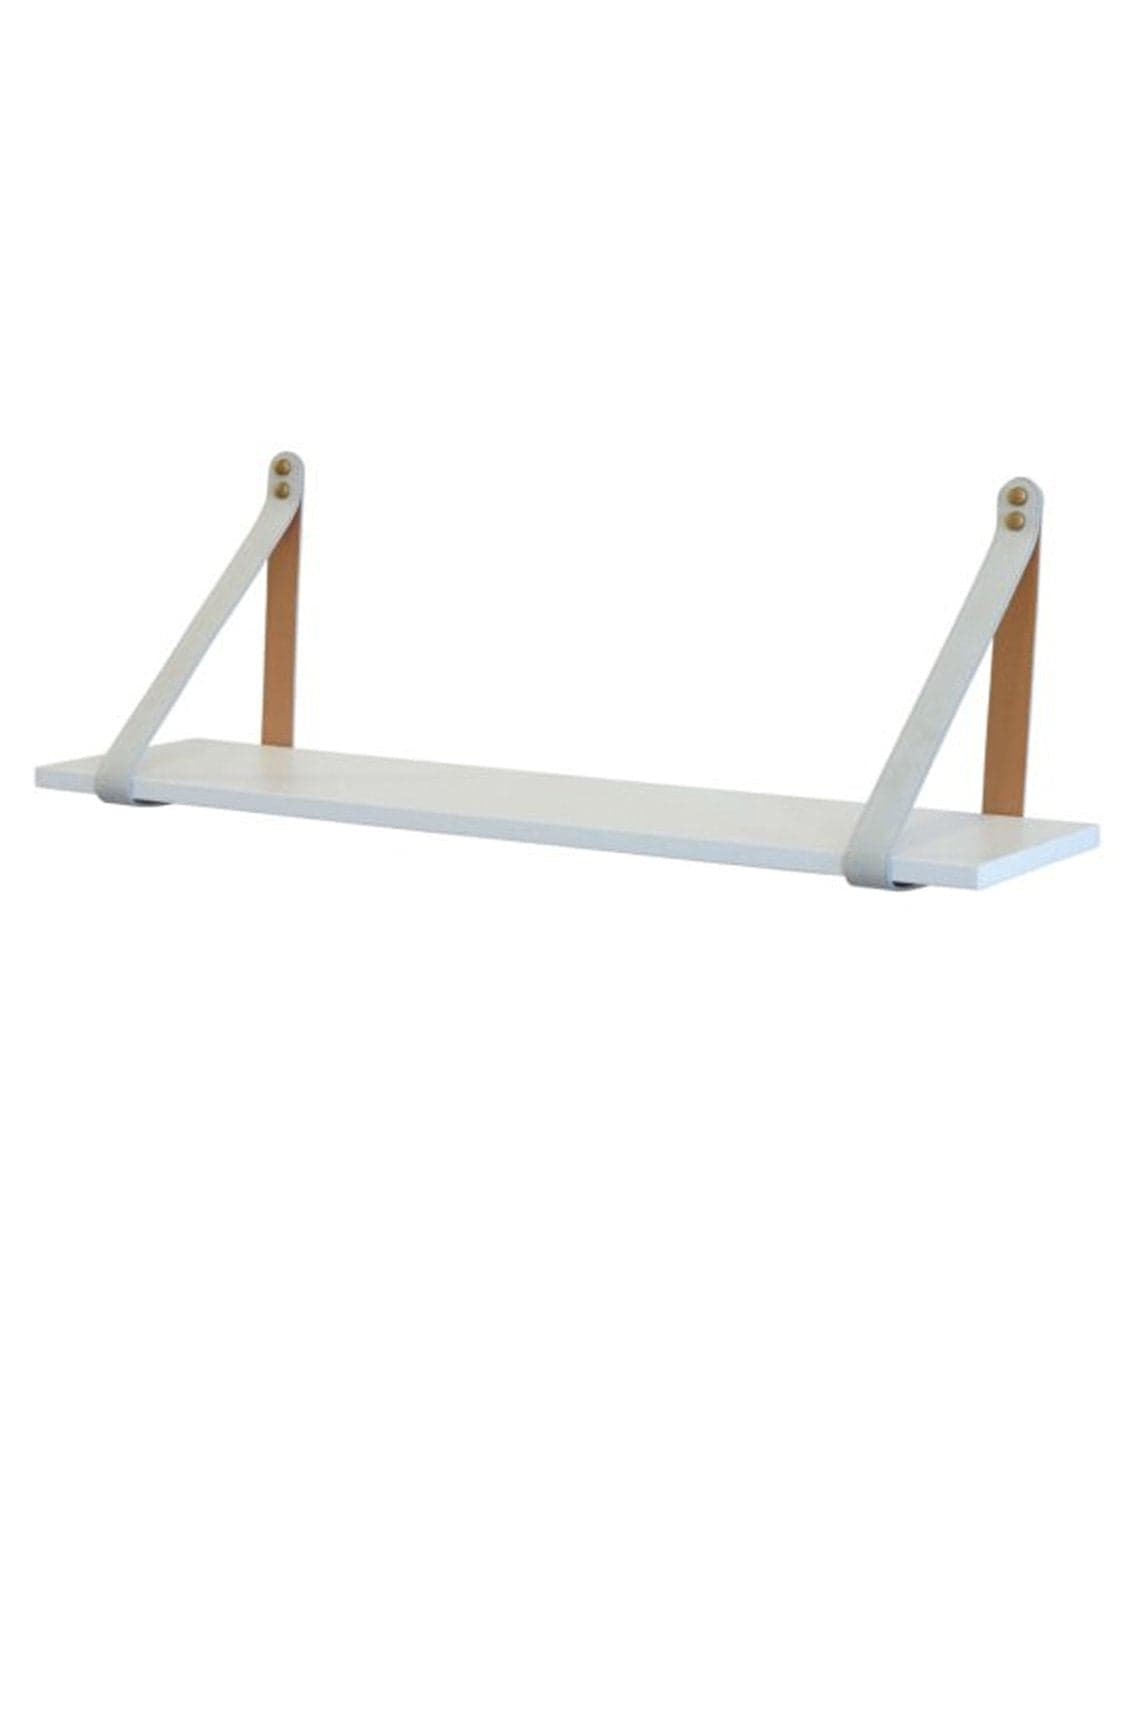 MUSHROOM SUEDE STRAP SHELF, WHITE SHELF